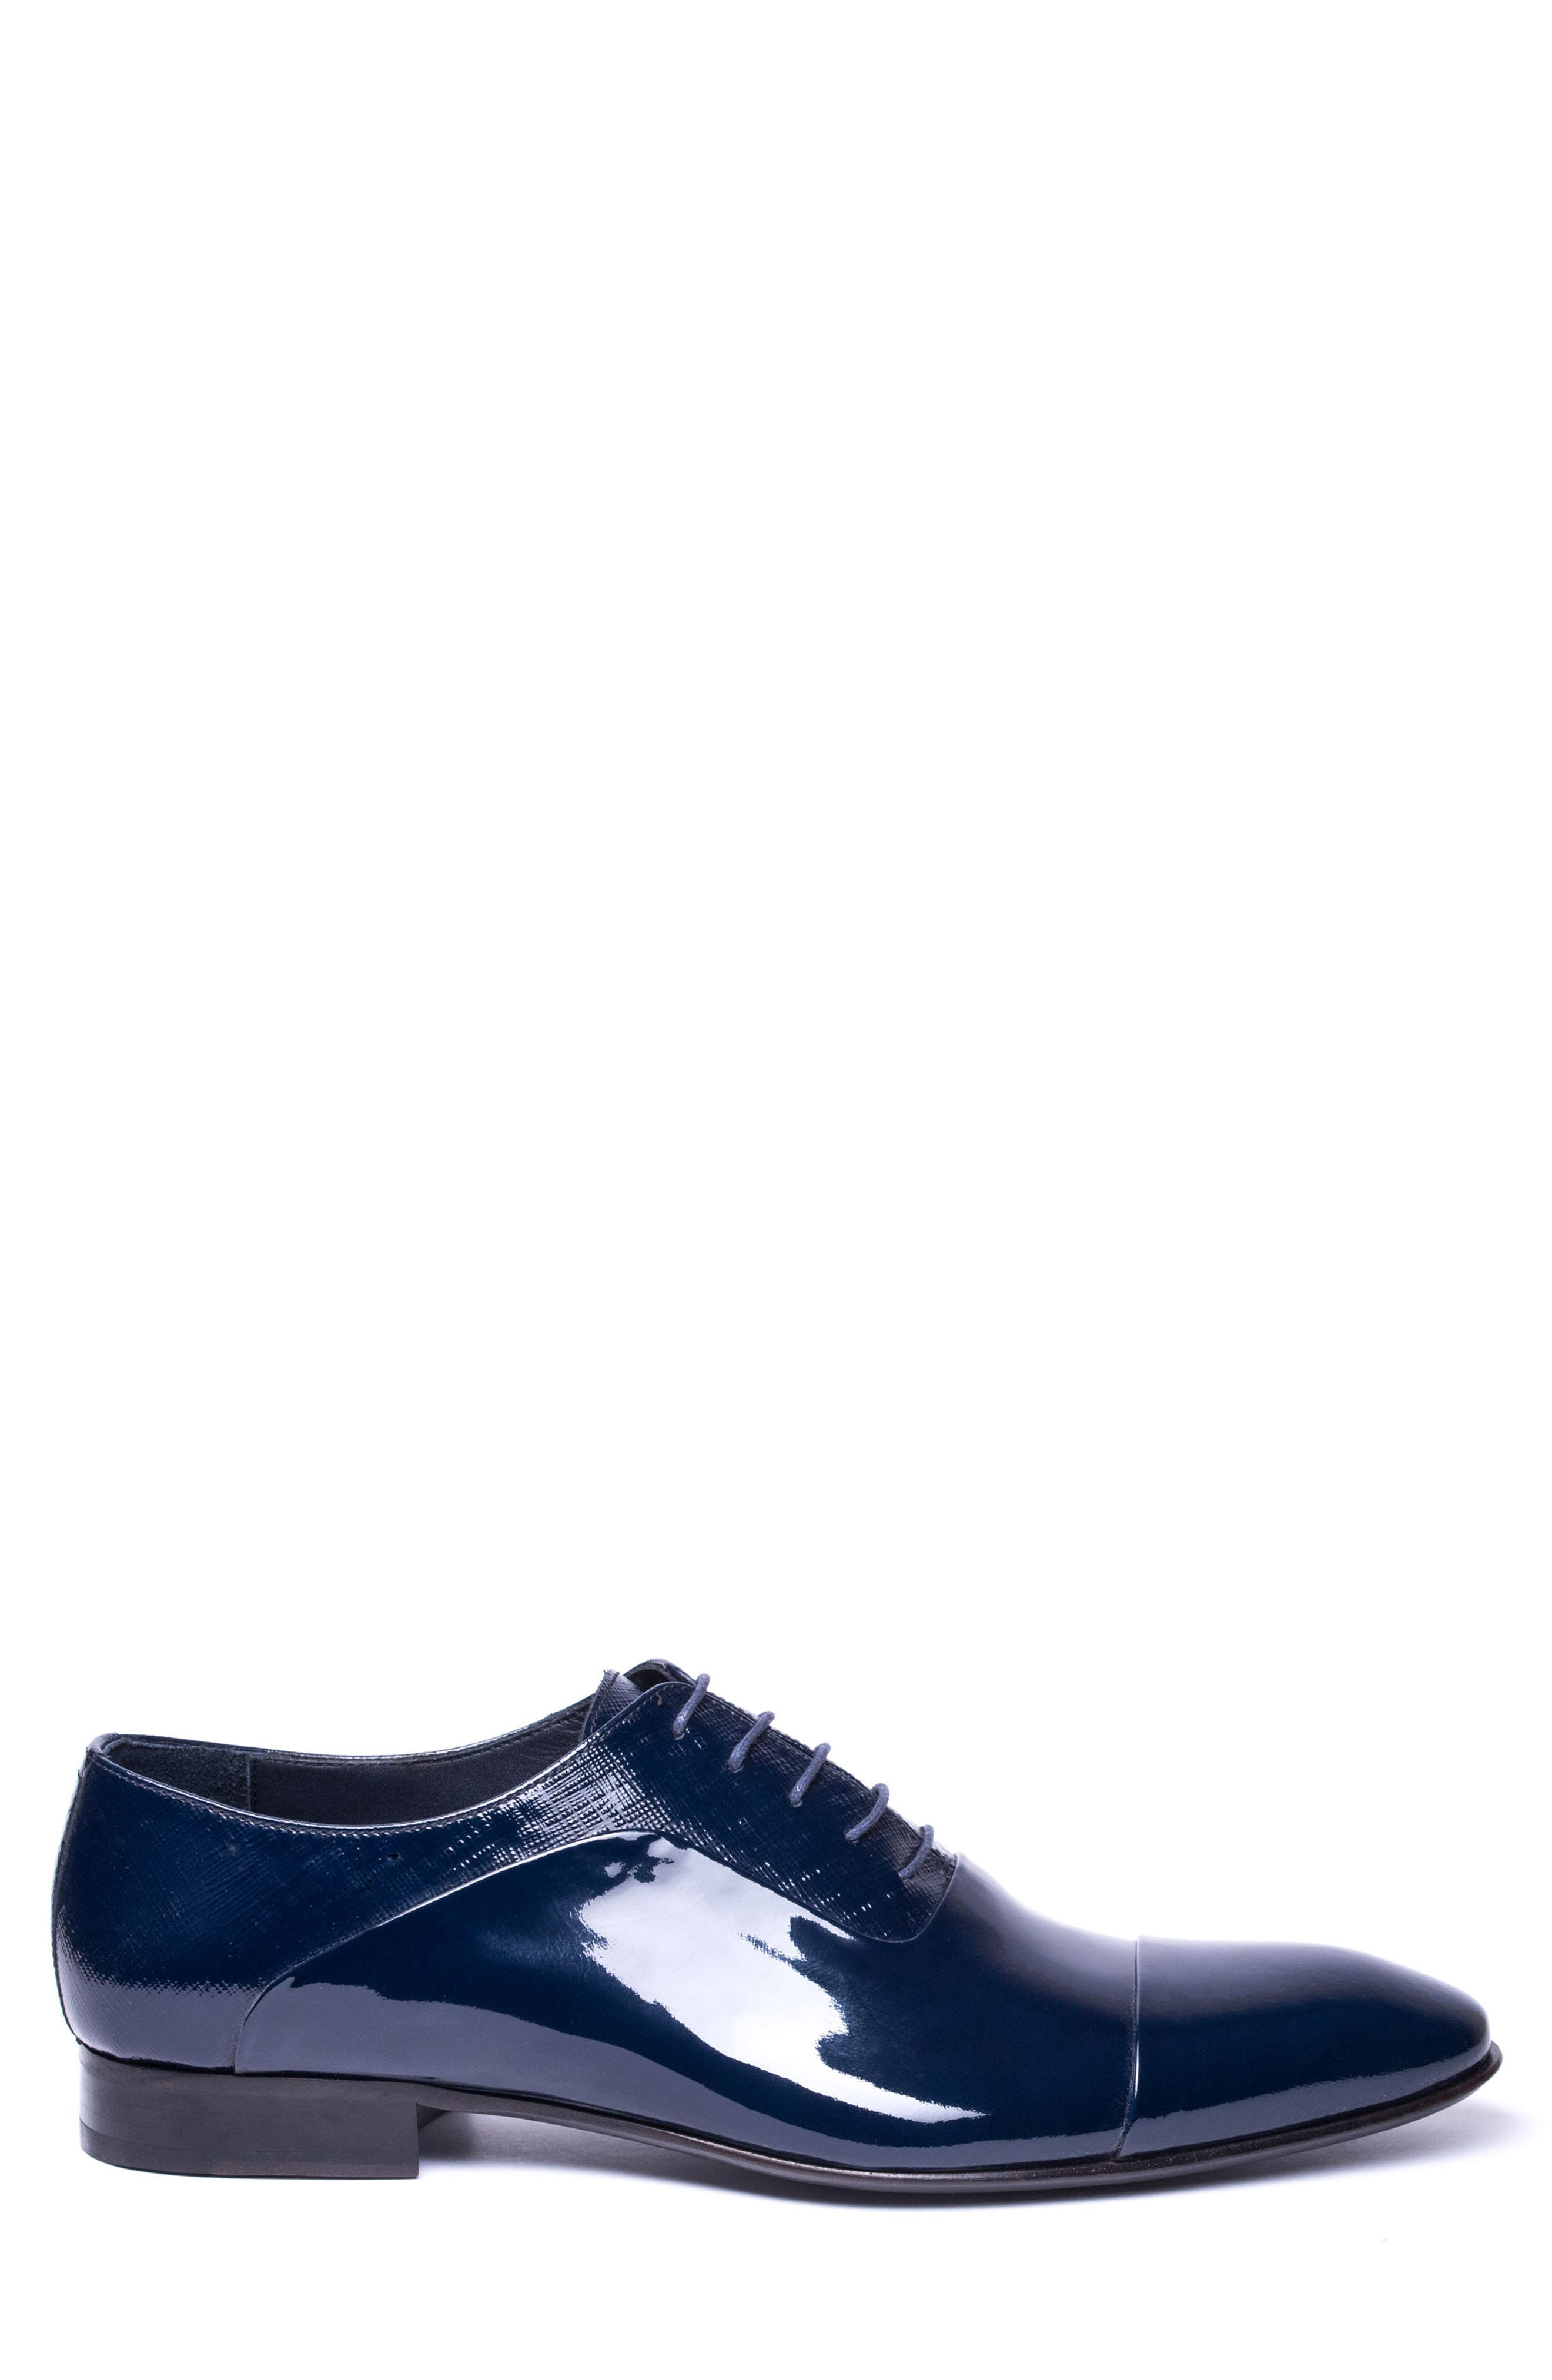 Jimmy Cap Toe Oxford,                             Alternate thumbnail 3, color,                             Navy Leather